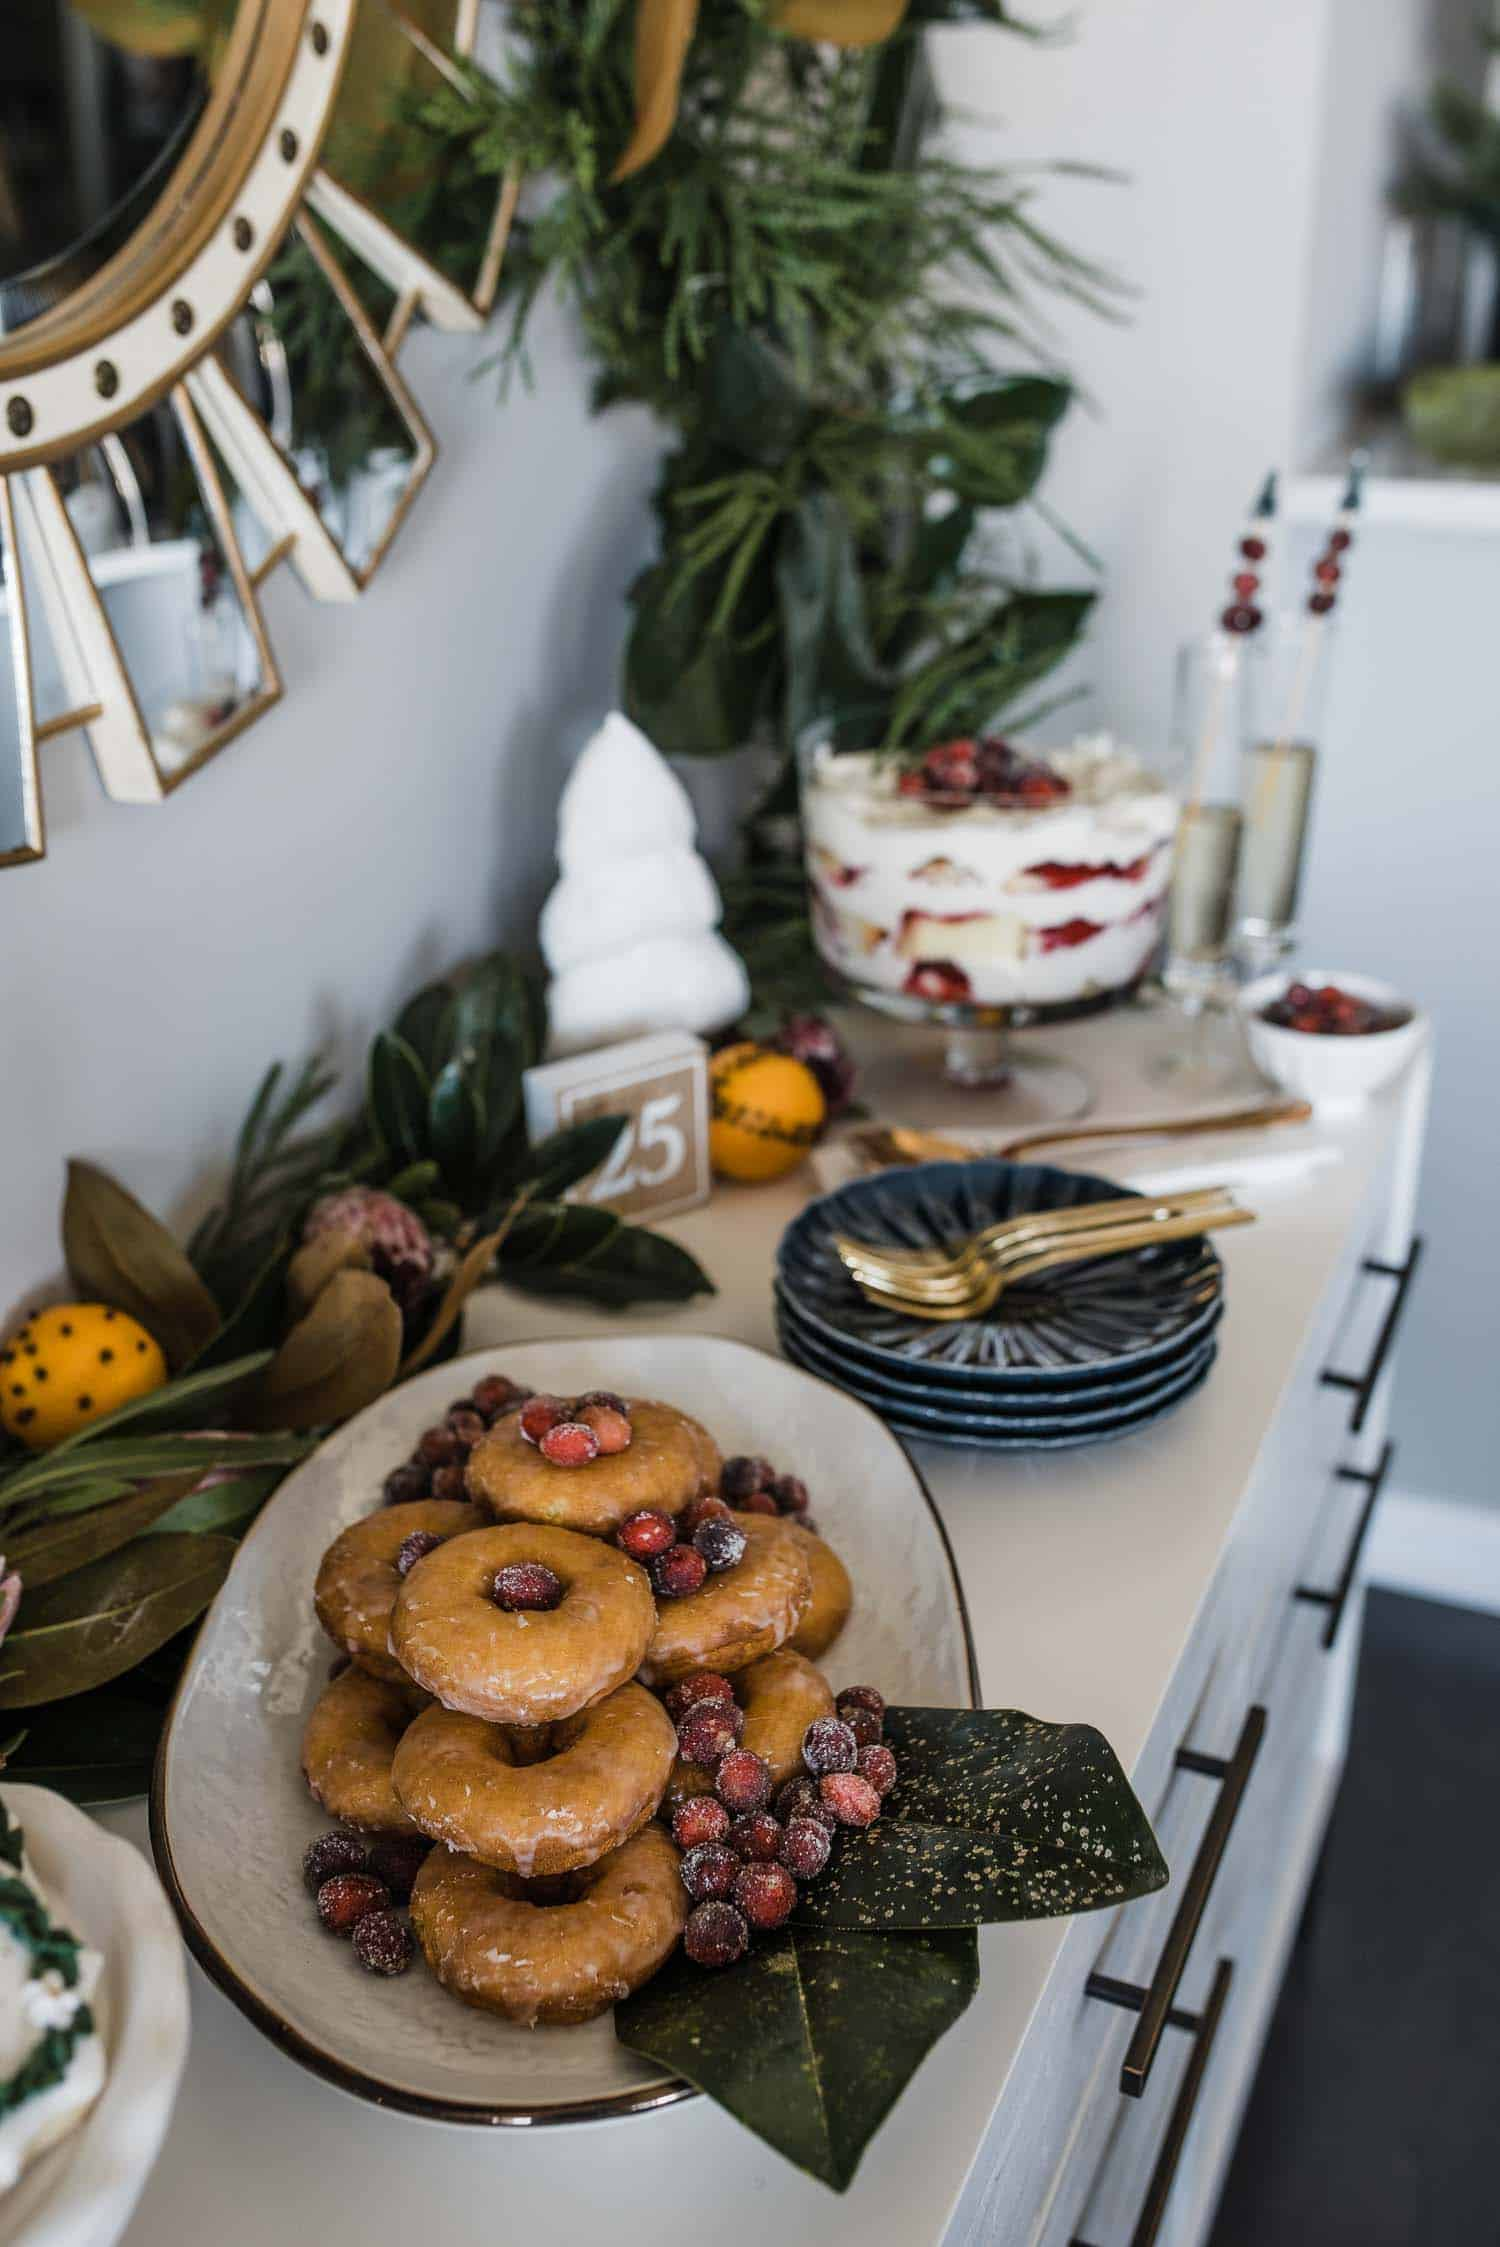 5 Secrets To An Effortless And Beautiful Dessert Bar